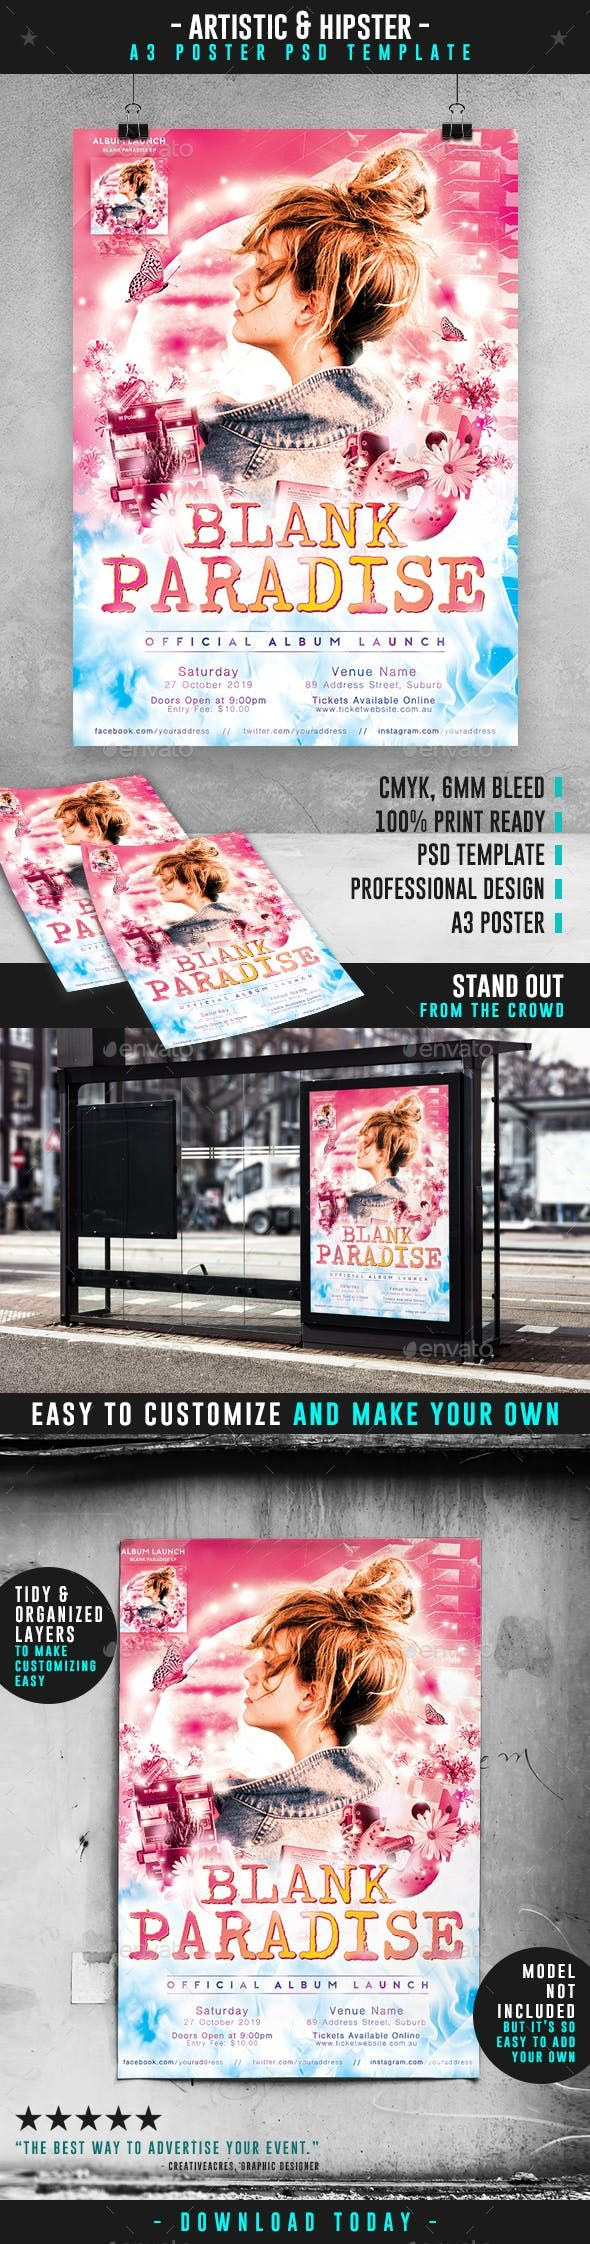 Bright Album Launch Event A3 Poster Template Poster Template